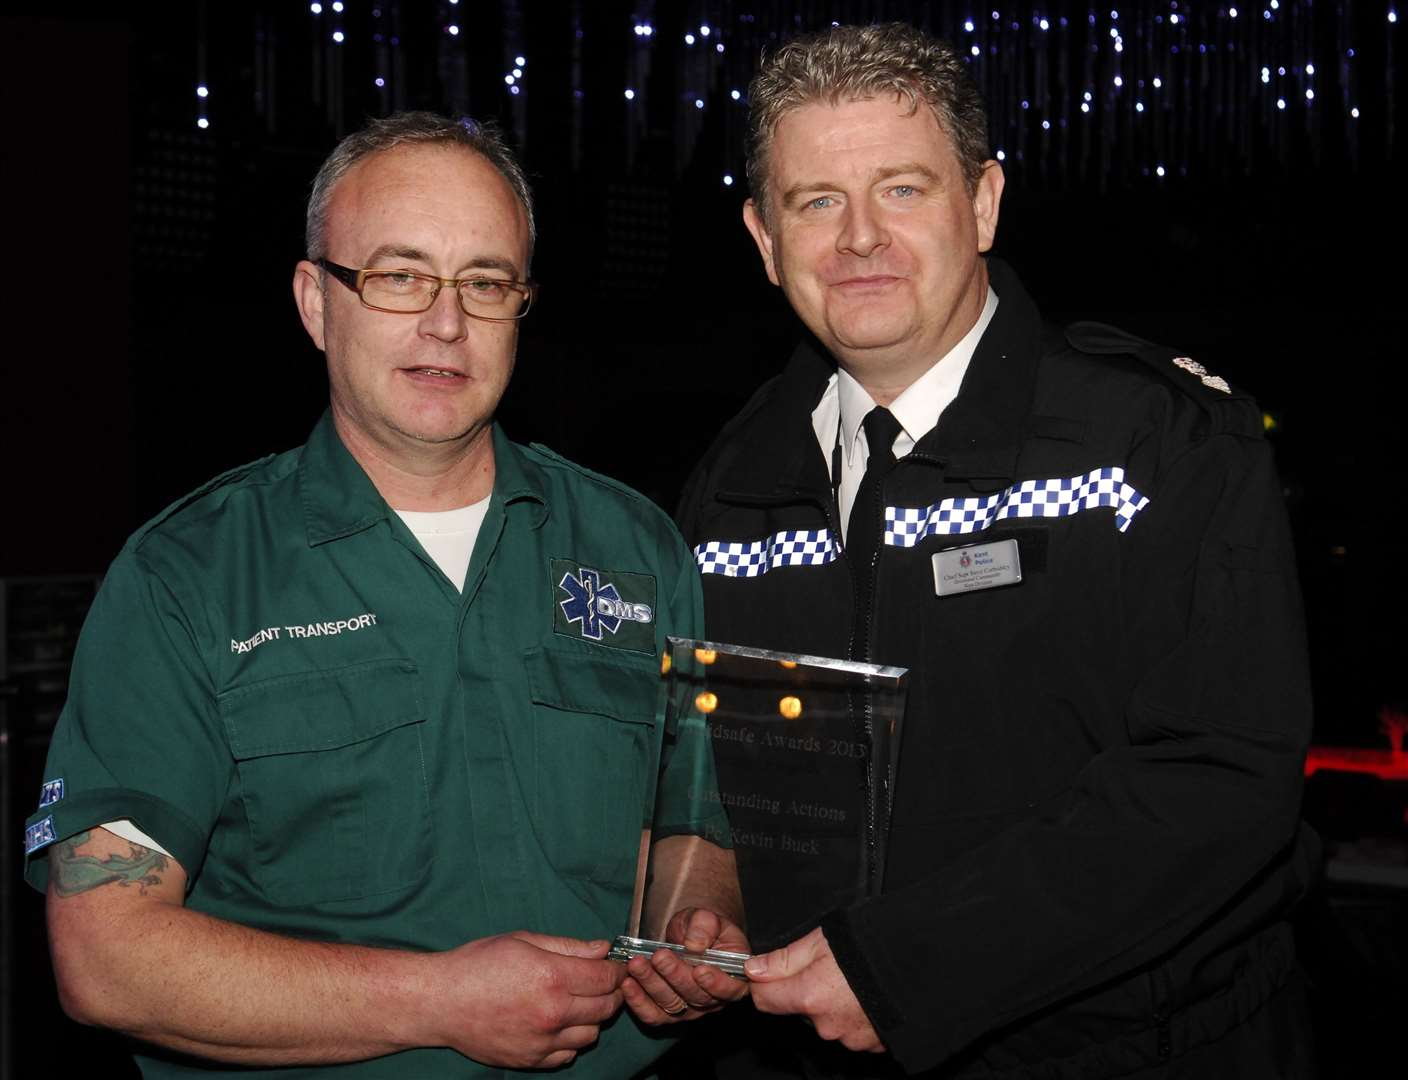 Kevin Buck getting his award from former Chief Supt Corbishley at the Maidsafe Awards Evening in 2014